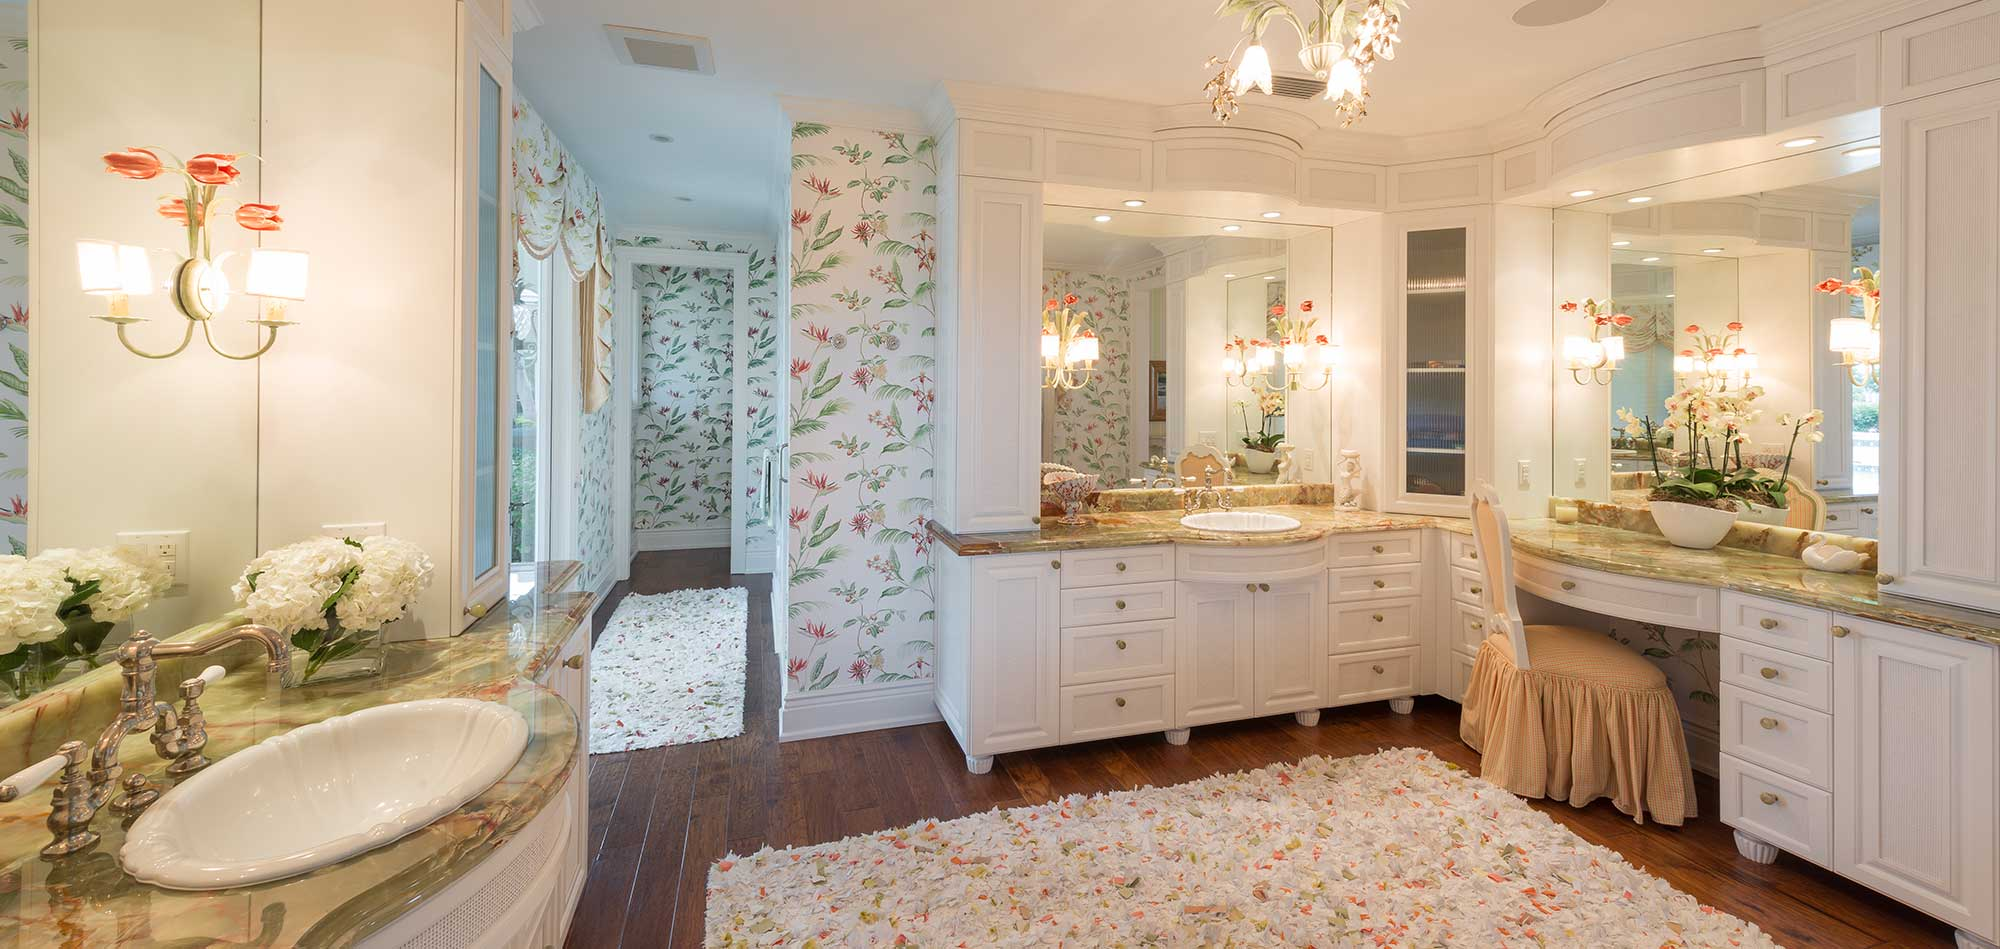 MKID Interior Design Services Near Sarasota, FL